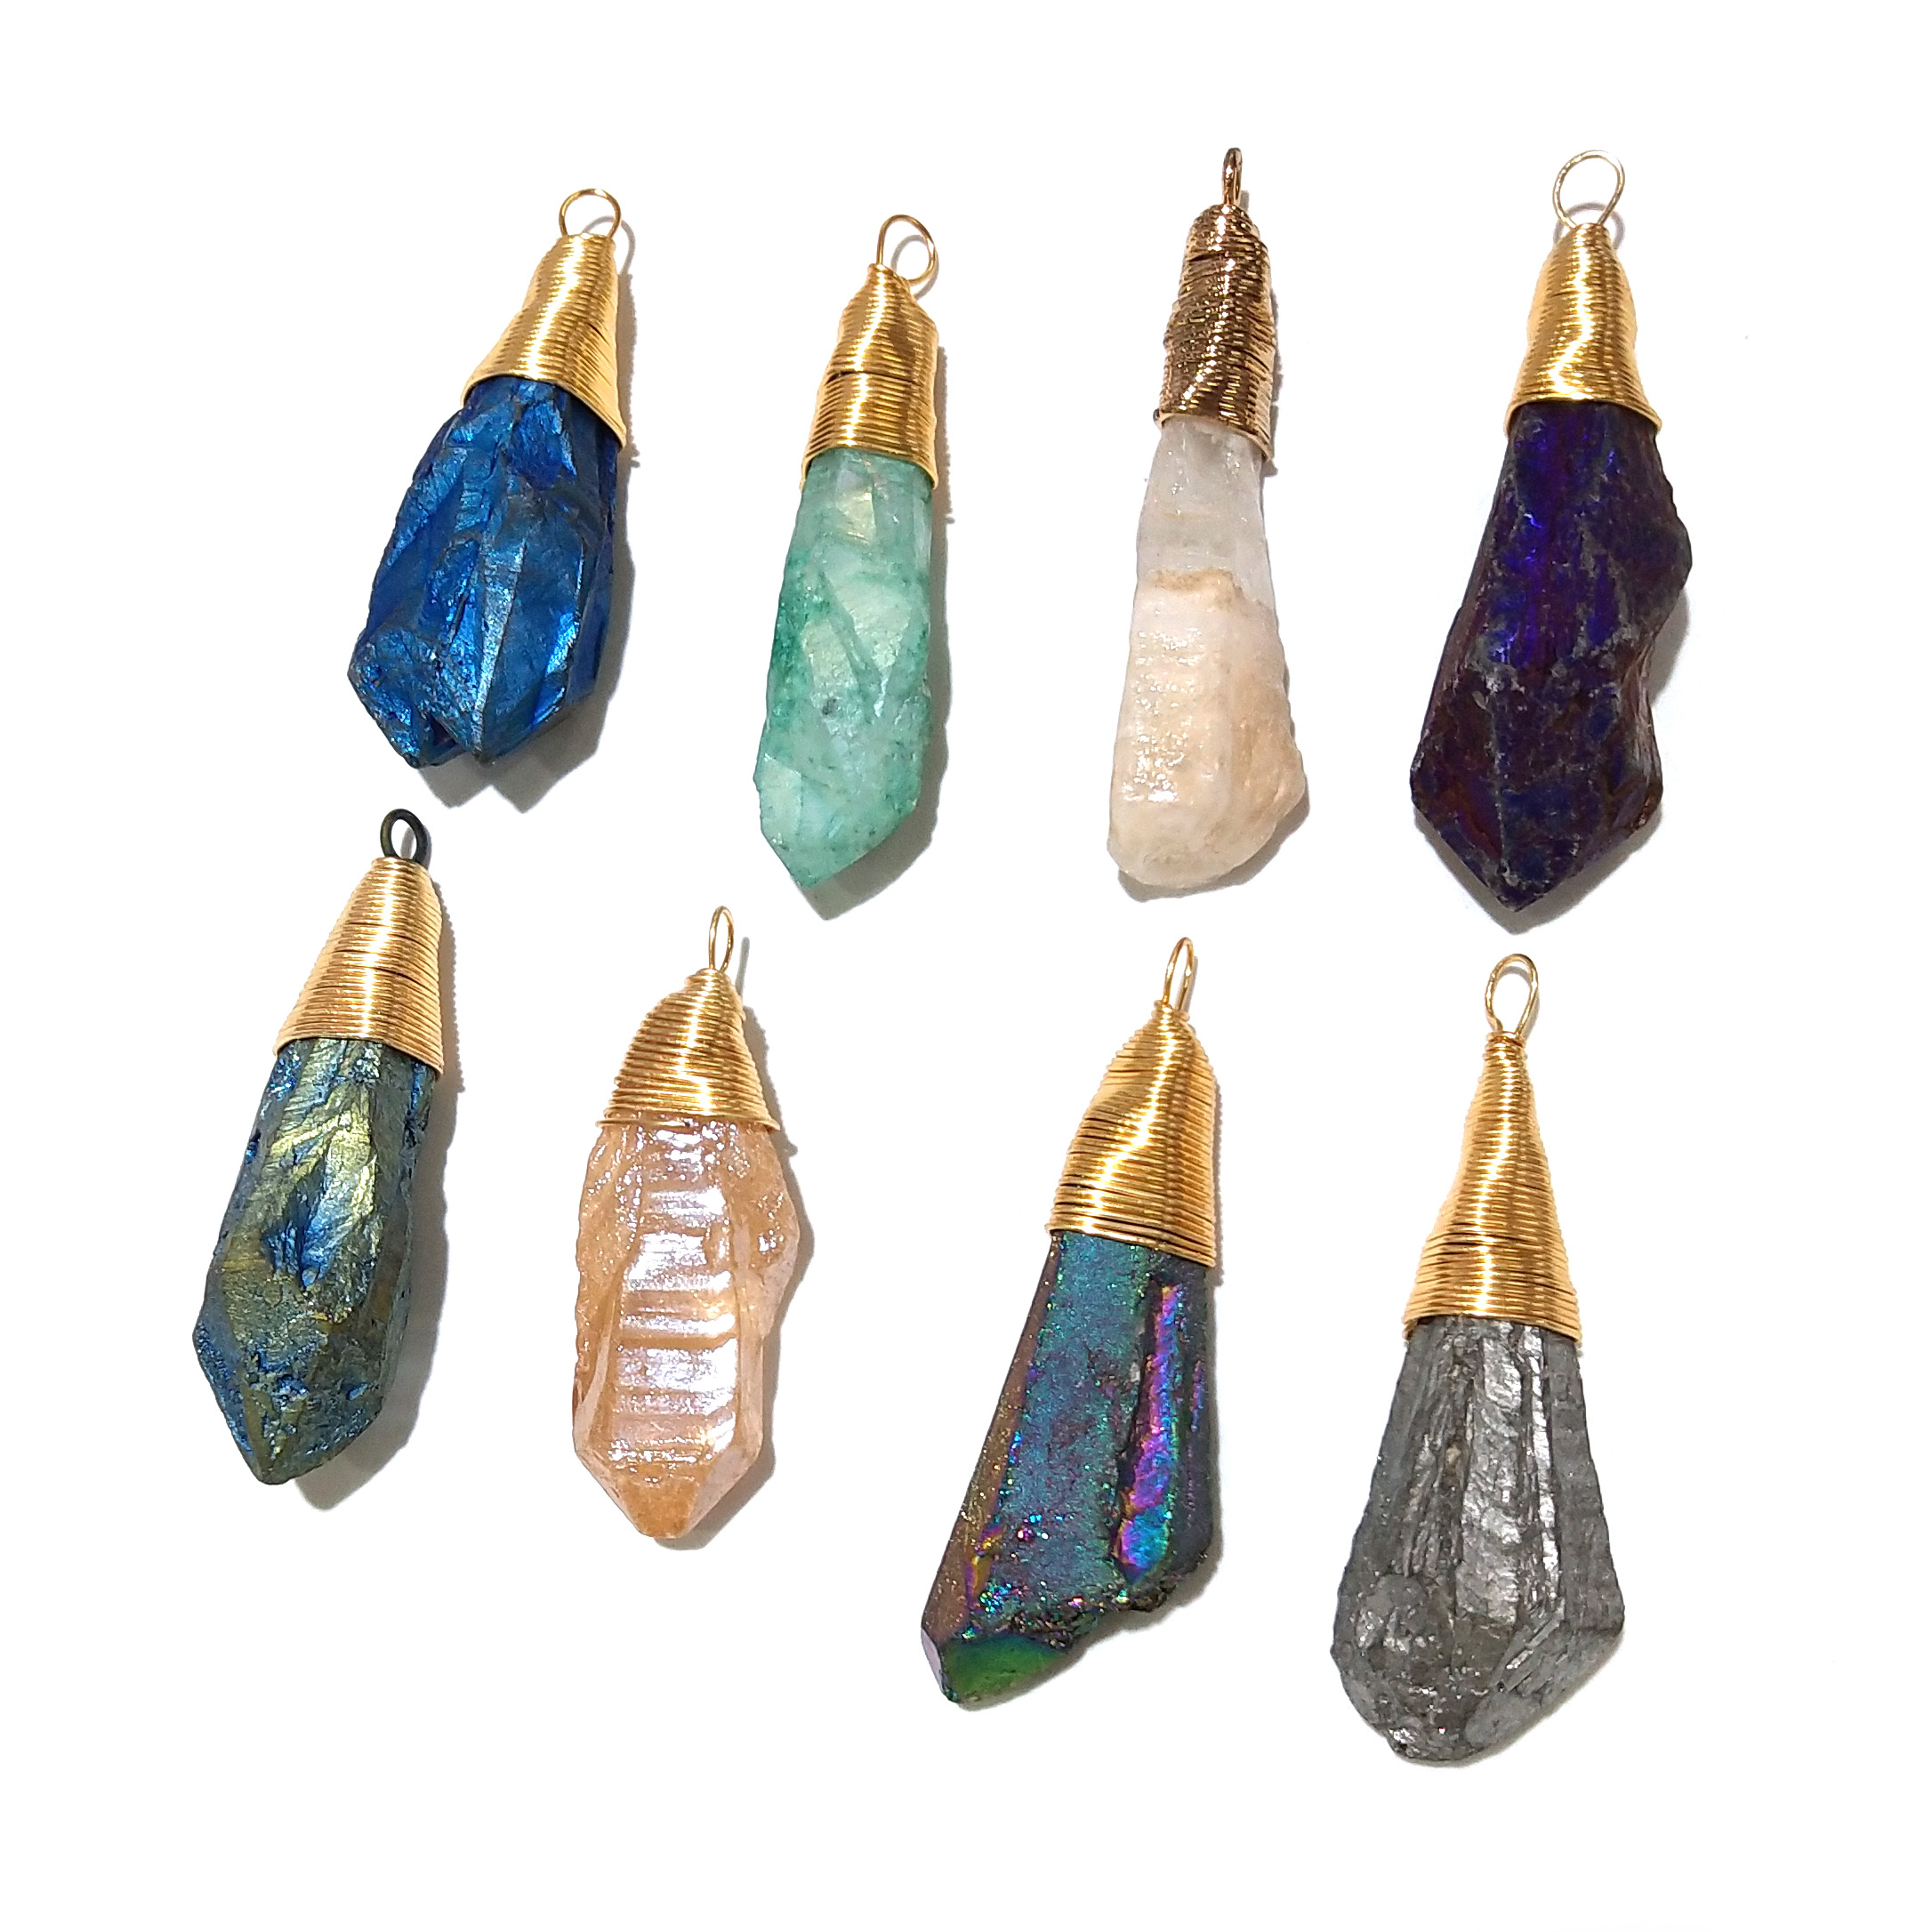 Wholesale New Crystal Pendants for Necklace Jewelry Making Supplies Fashion Natural Stone Pendants for Diy Jewelry Size 58x20mm in Pendants from Jewelry Accessories